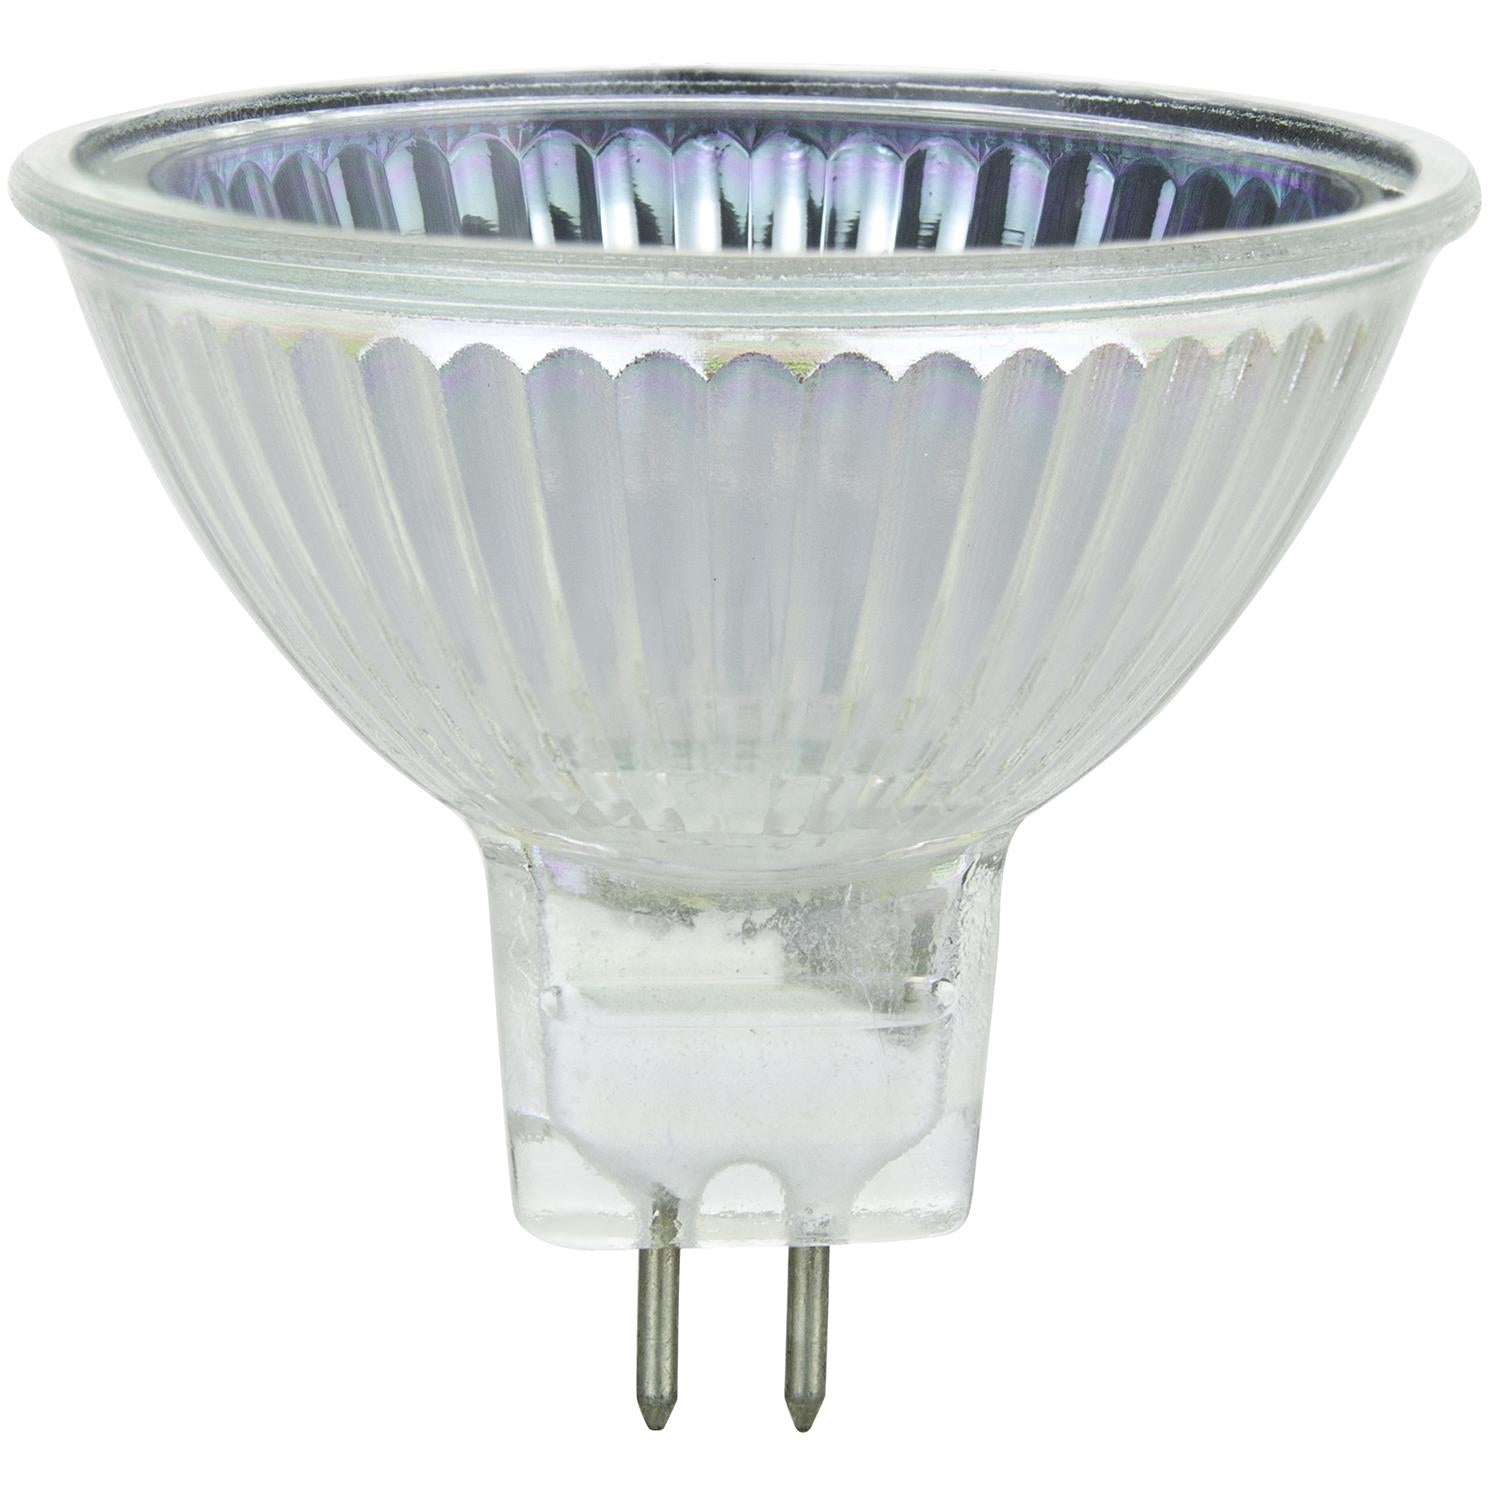 SUNLITE 50w 12v MR16 Flood 38deg. GU5.3 Bi-Pin With Cover Guard Halogen Bulb